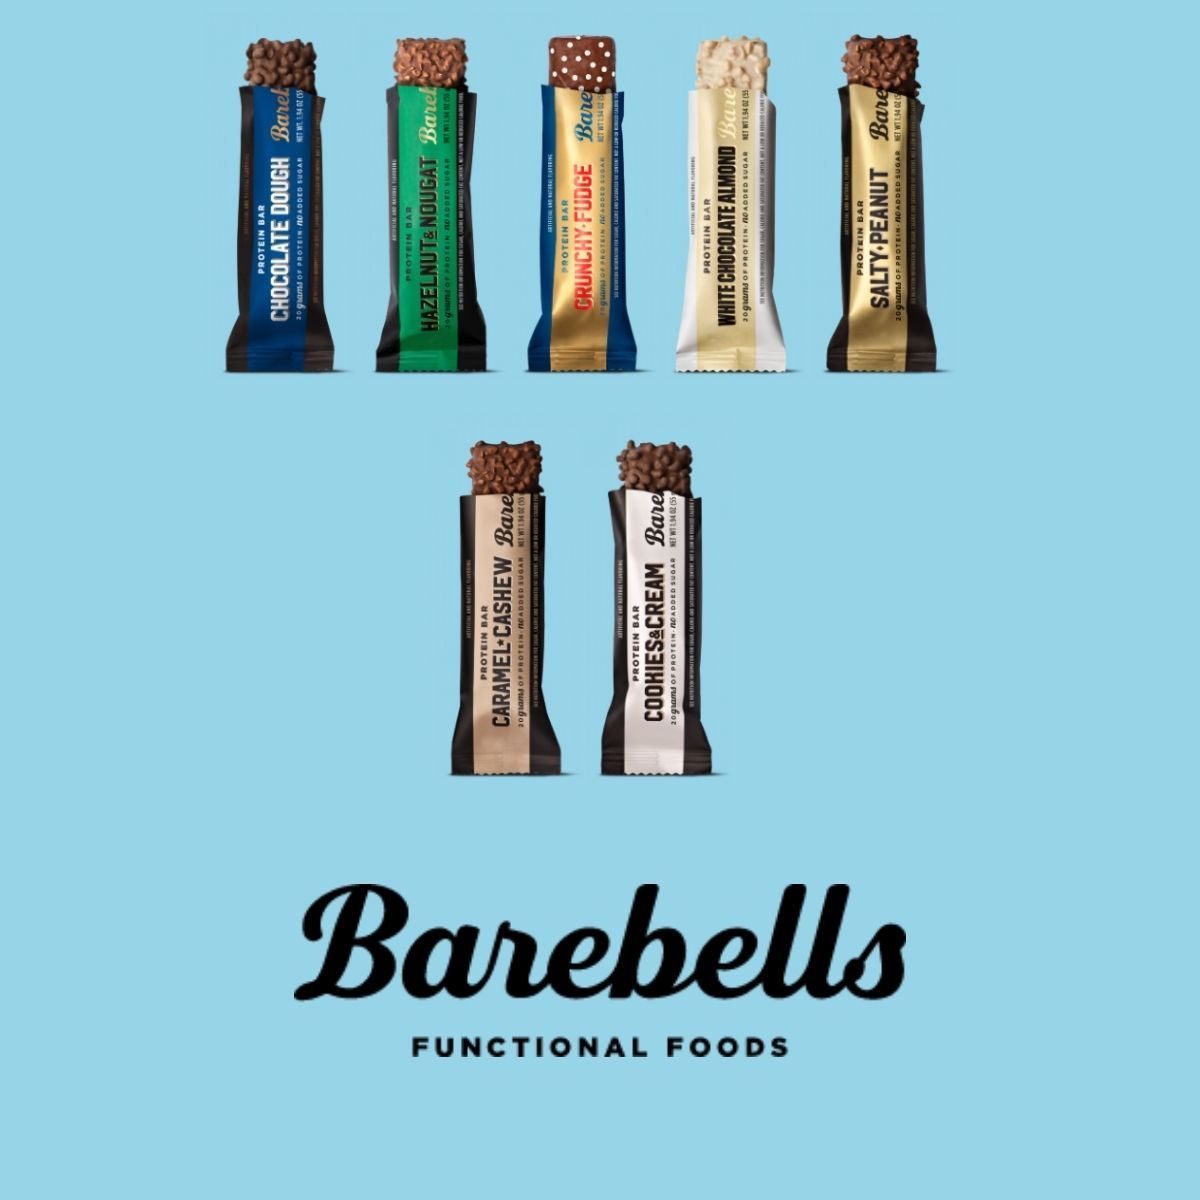 Barebells Protein Bar Review